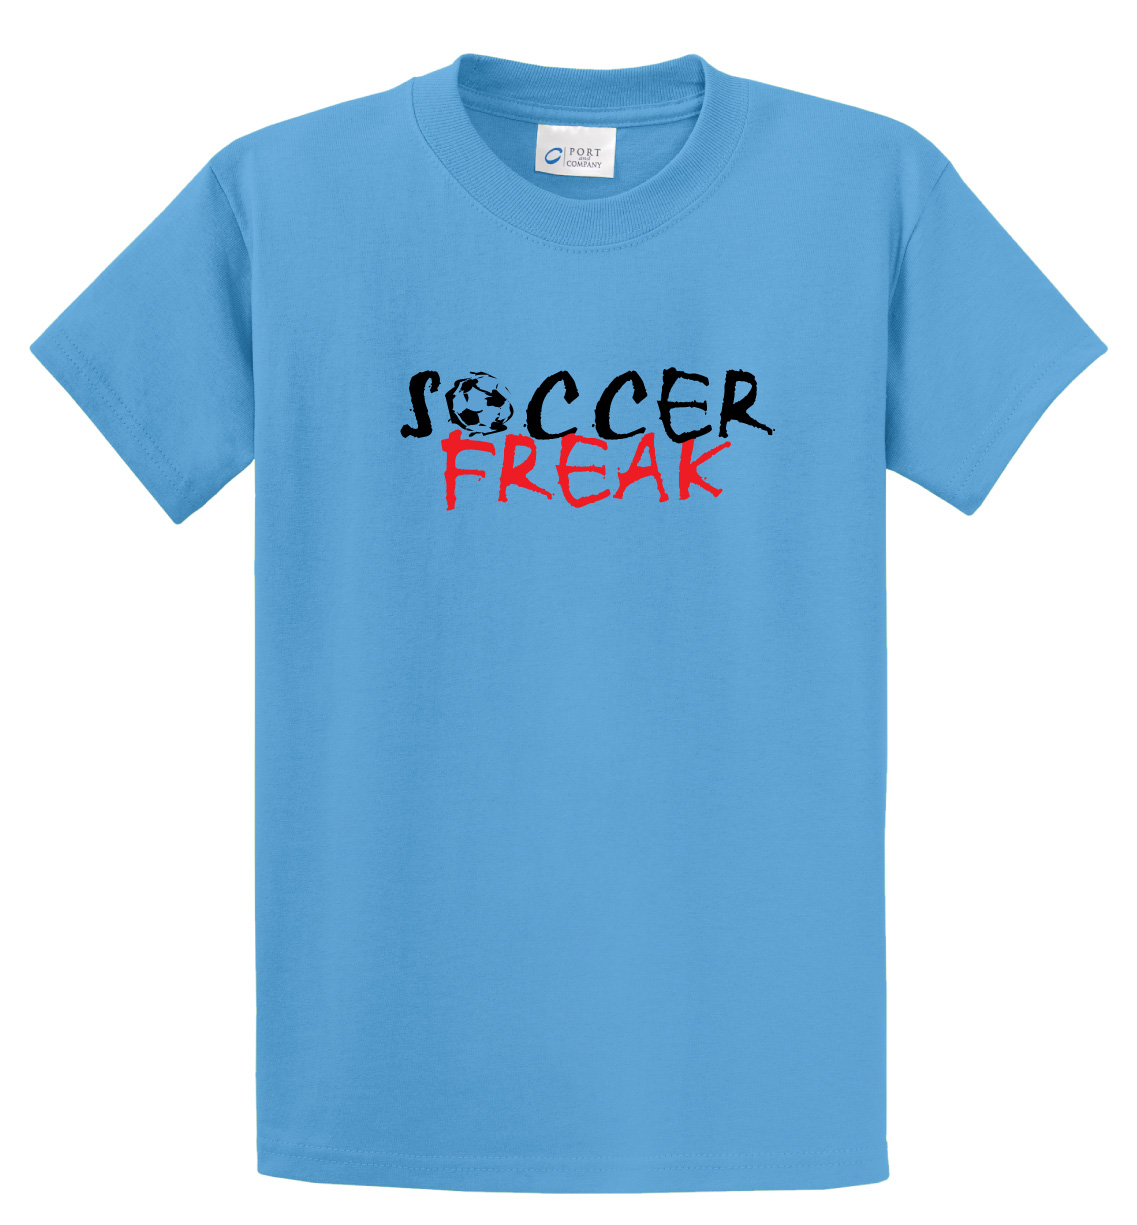 Soccer Freak Tshirt in aqua blue by Code Four Athletics